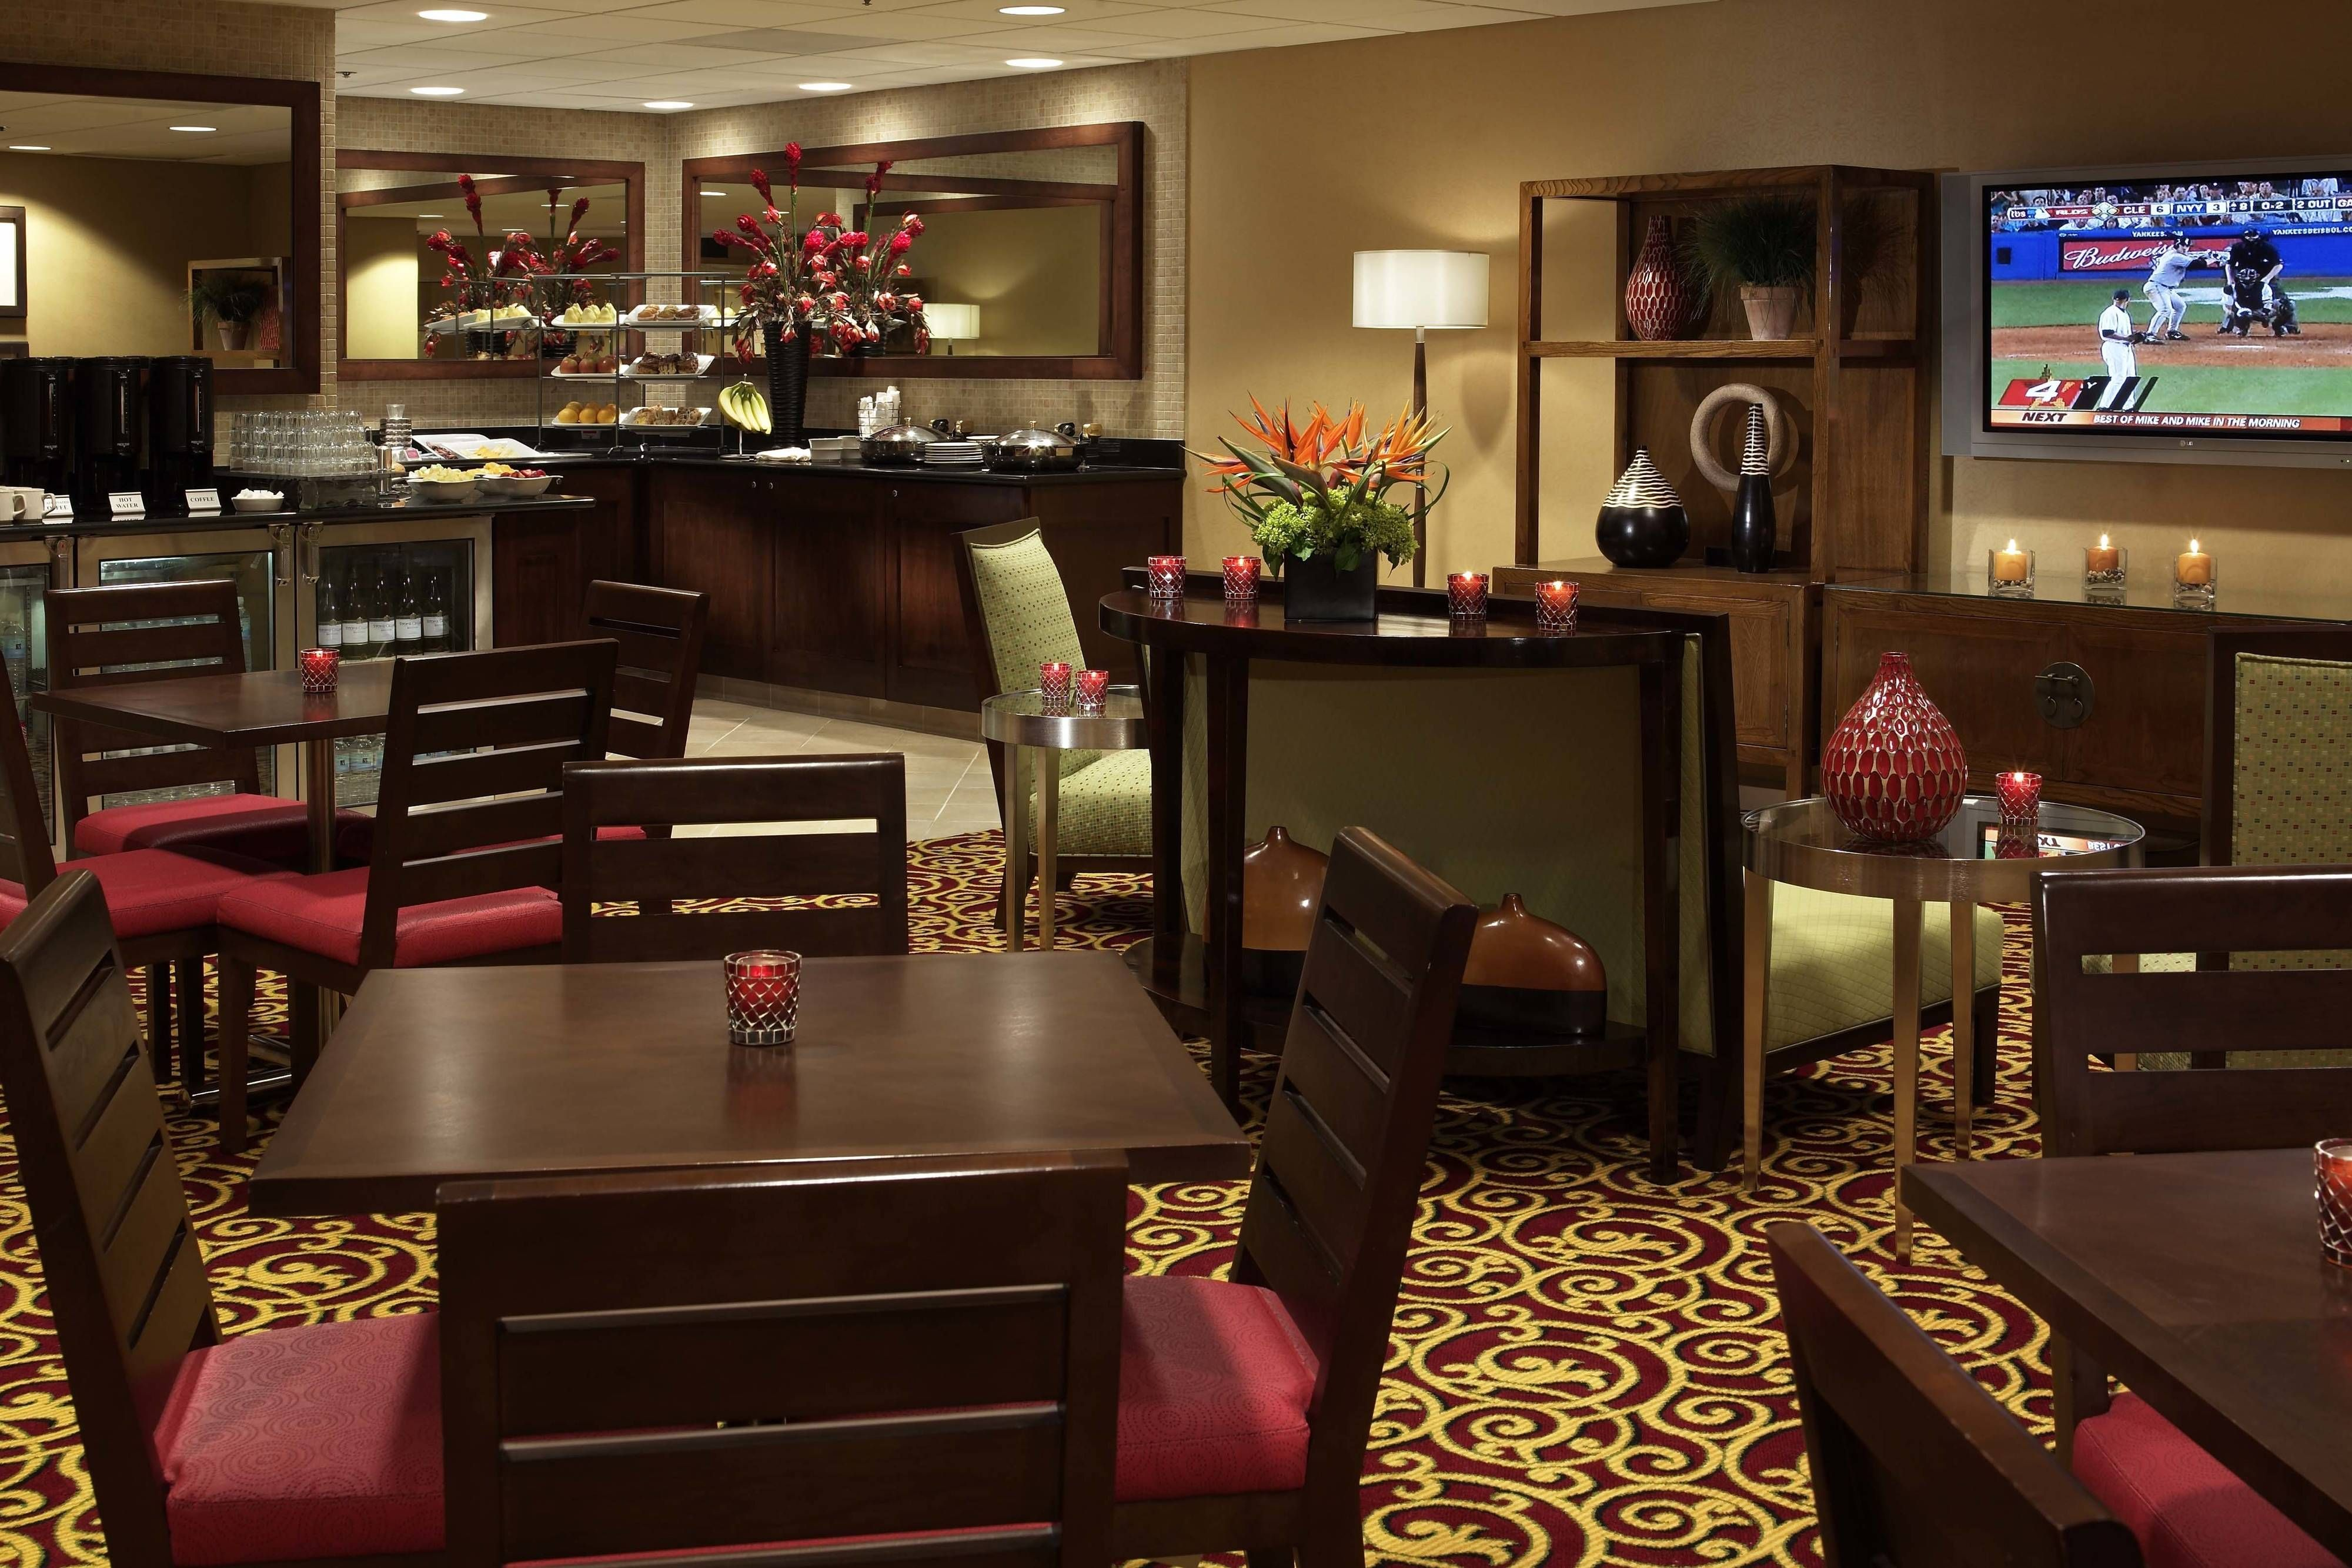 Des Moines Marriott Downtown Concierge Lounge Seating Beautiful Holiday Comfortable Lounge Seating Home Home Decor